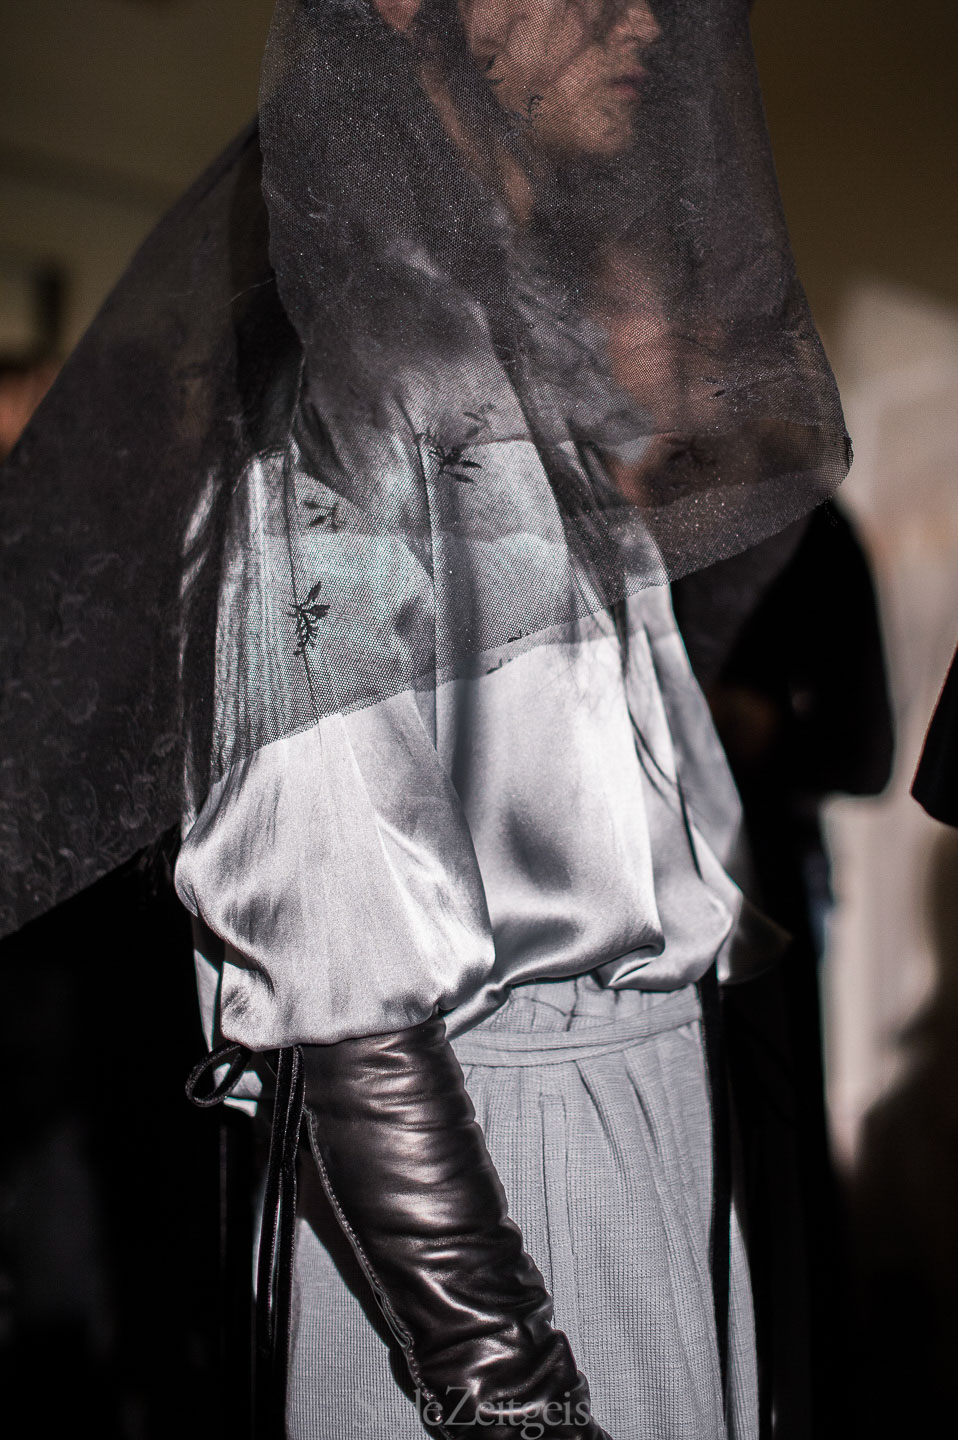 Ann Demeulemeester F/W17 Women's - Paris Backstage - fashion - StyleZeitgeist, PFW, Paris, FW17, Fashion, Fall Winter, Backstage, Ann Demeulemeester, 2017